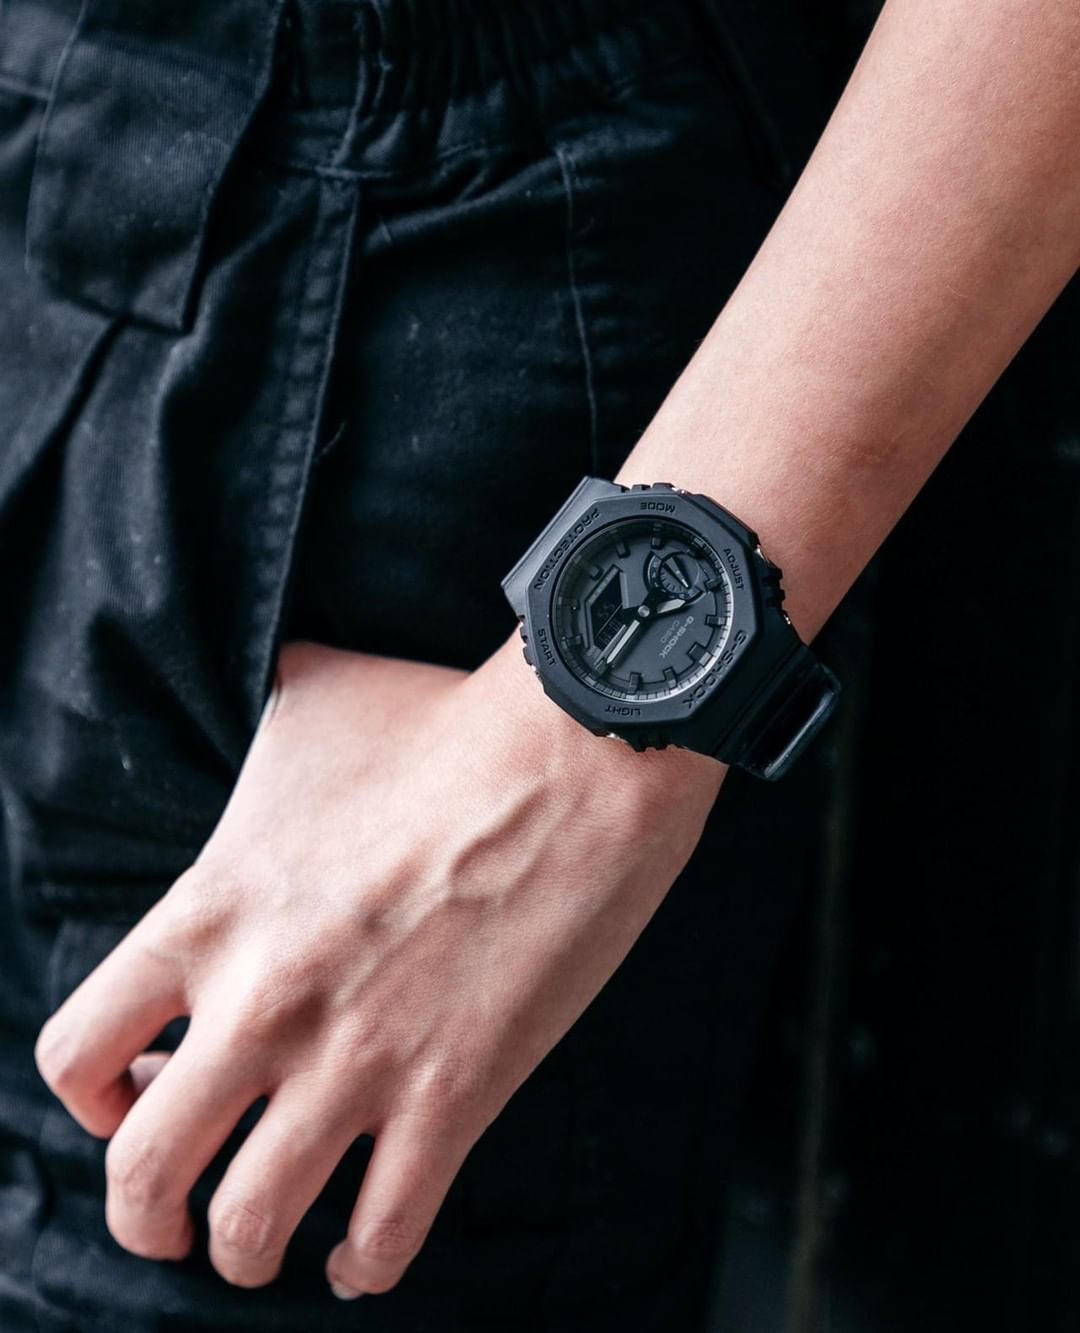 G Shock Ga 2100 The Absolute Toughness Mantra In 2020 G Shock G Shock Watches Mens G Shock Watches